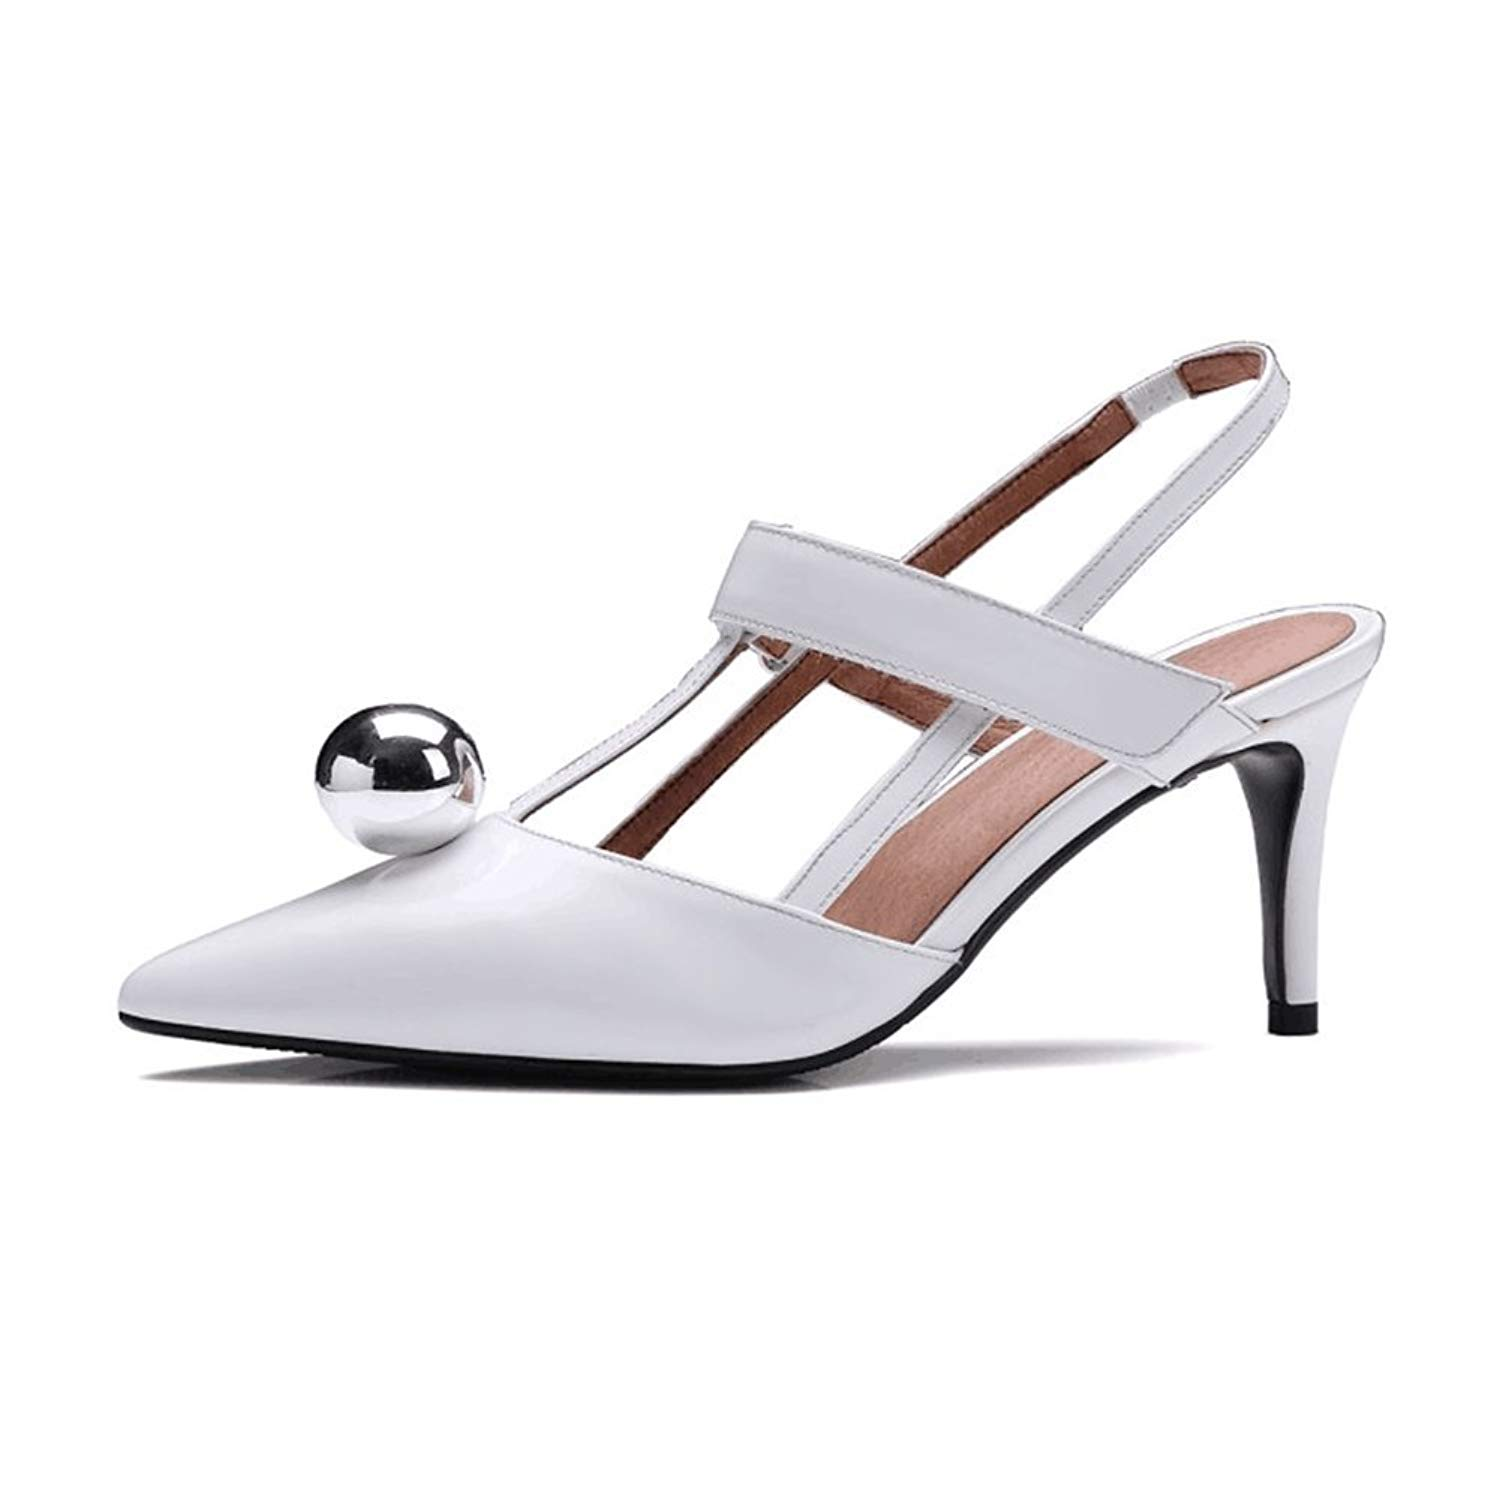 13876cfc2fa Get Quotations · Nine Seven Patent Leather Women s Pointy Toe Stiletto Heel  Slingback Handmade Dress Pump Heels (7.5